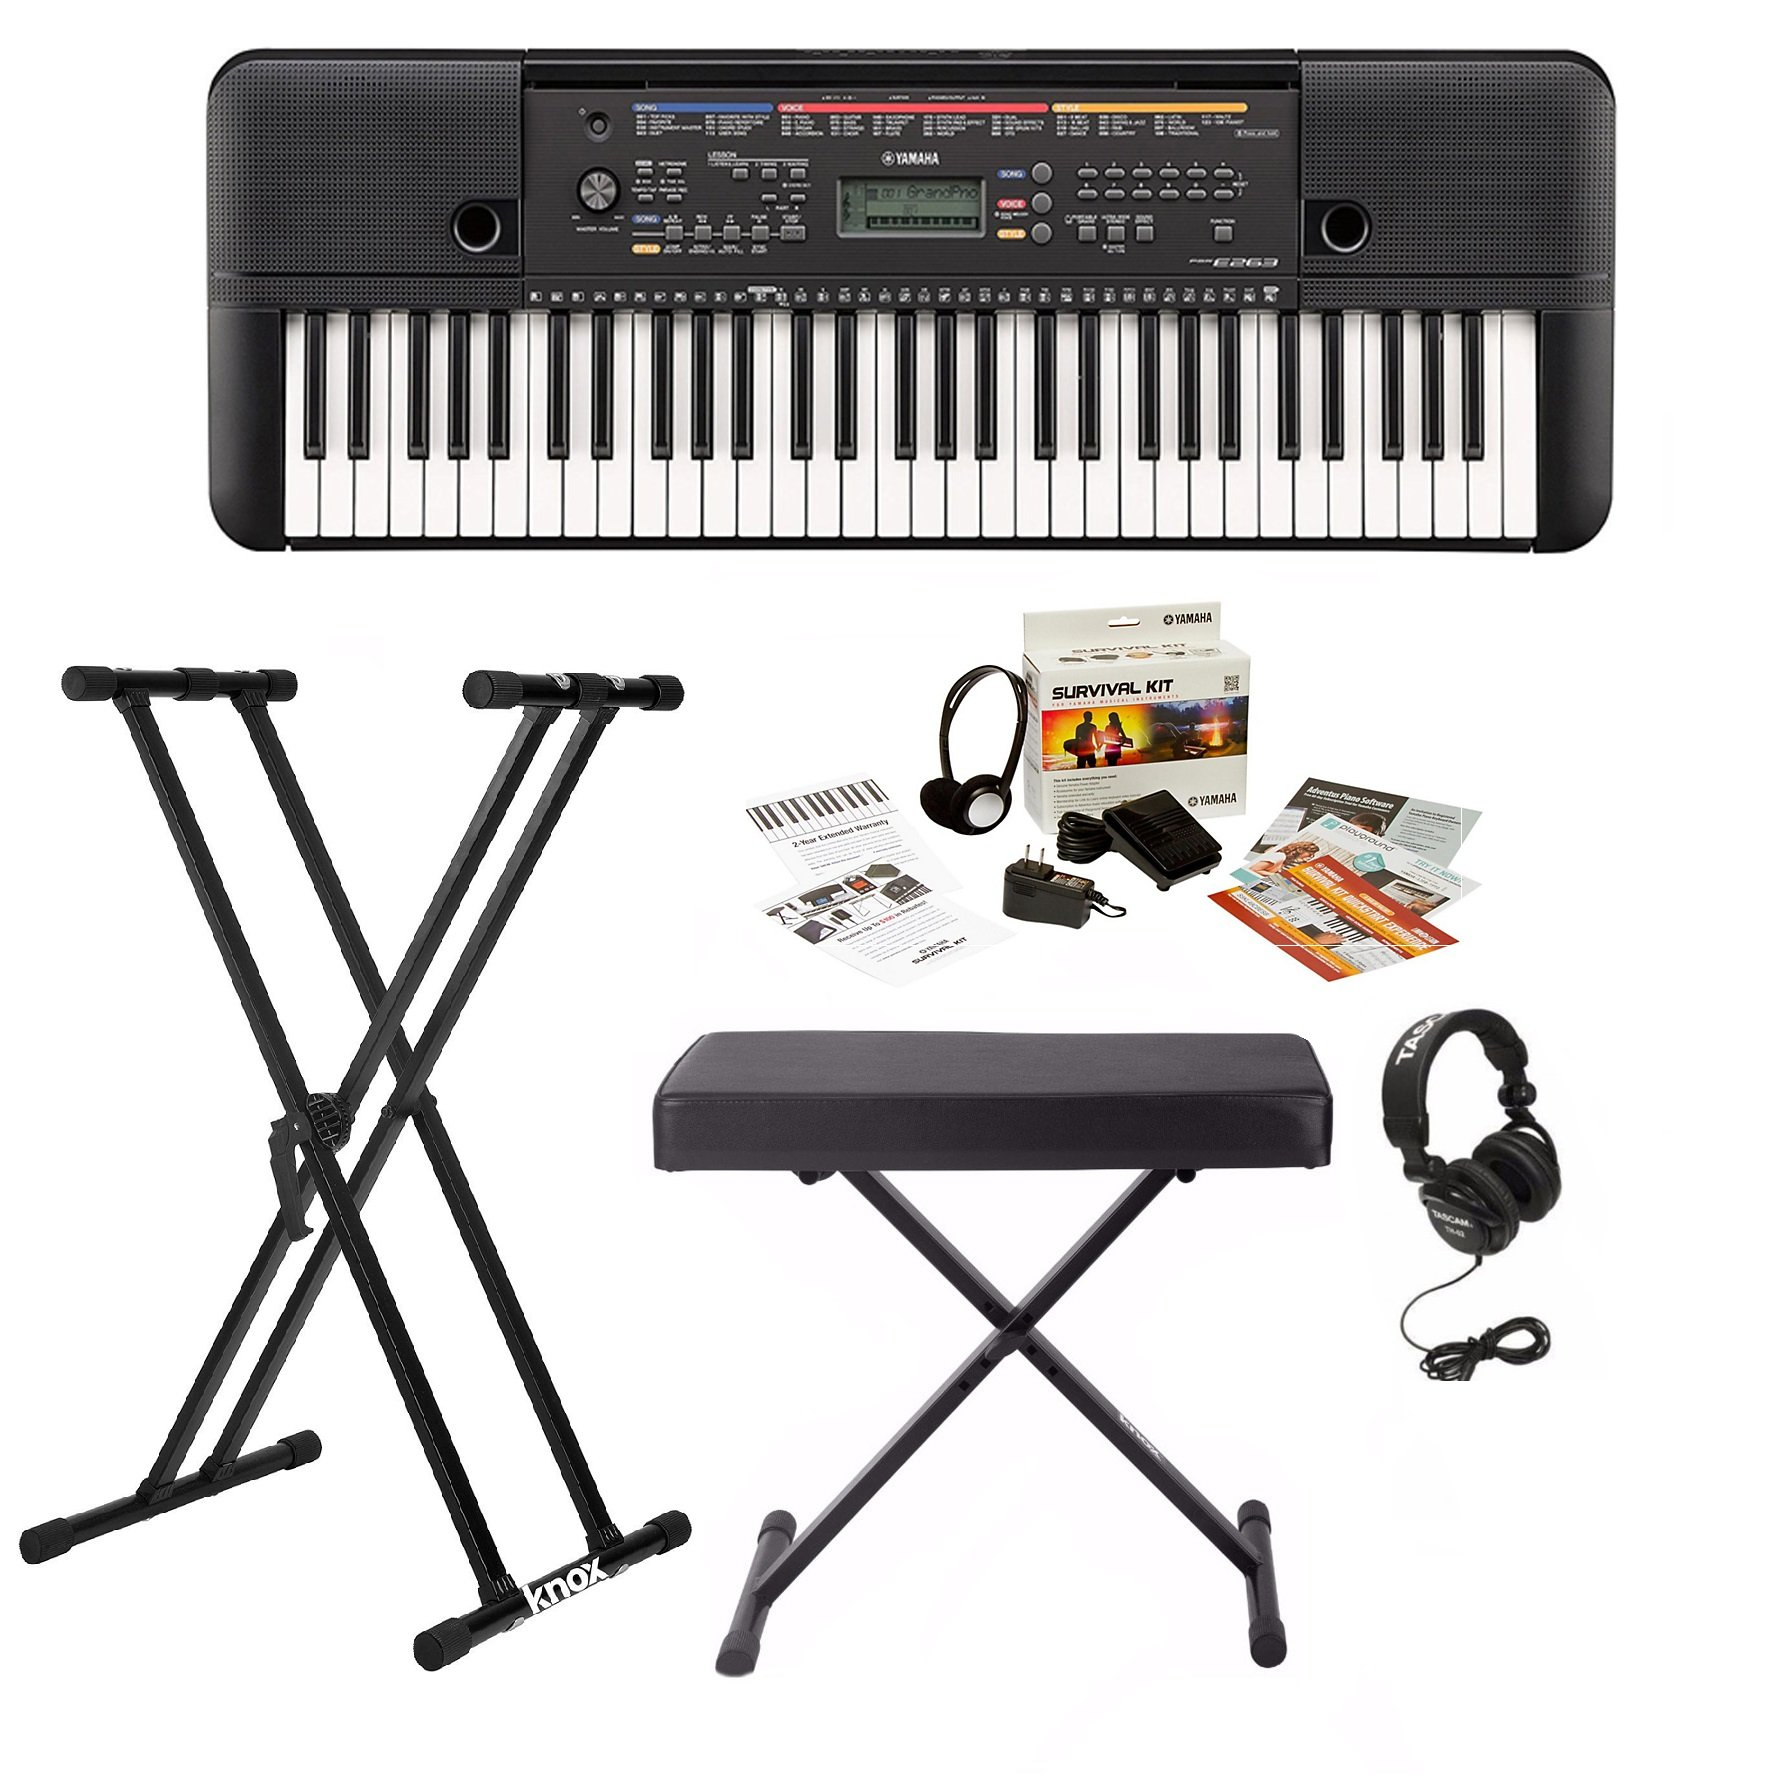 Yamaha PSRE263 61 Key Keyboard with Knox Bench, Stand, Studio Headphones, Survival Kit (Includes Power Adaptor) by YAMAHA